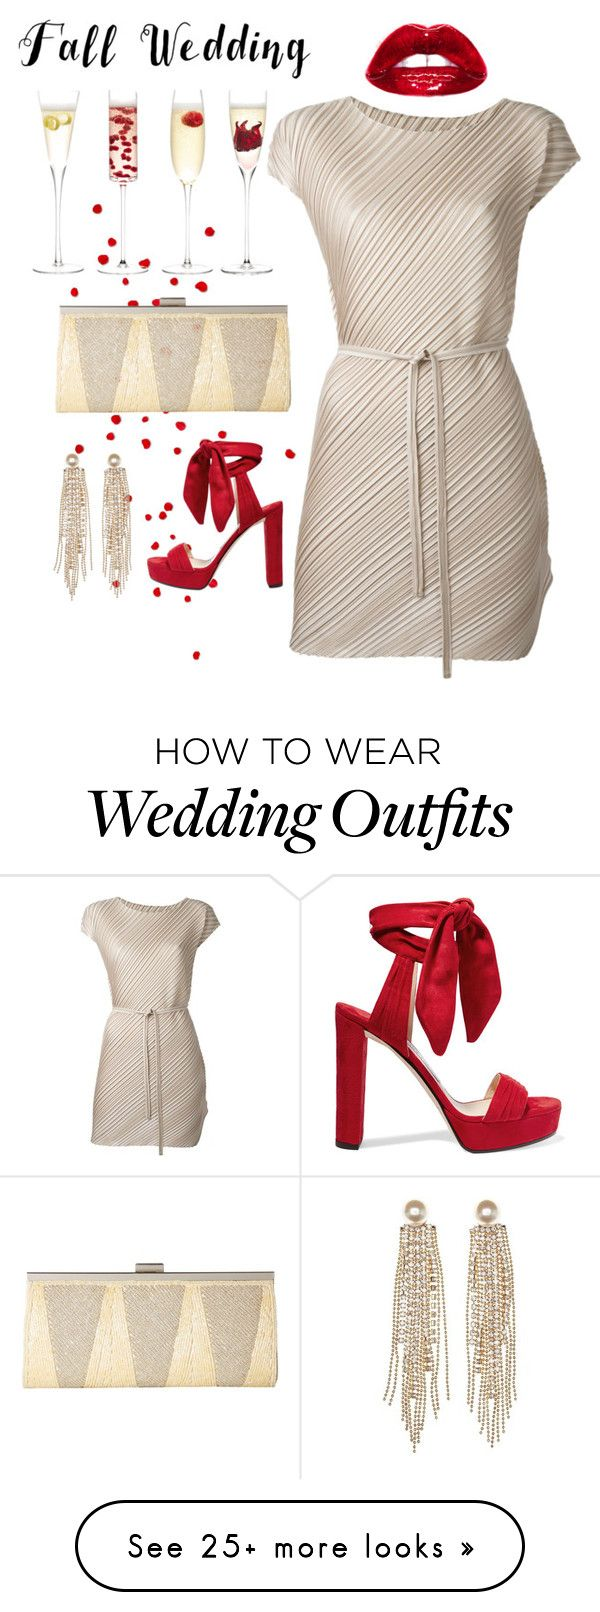 """""""Guest"""" by fallinginlovewithlove on Polyvore featuring LSA International, Rick Owens, Jimmy Choo, Nina, Charlotte Russe and fallwedding"""